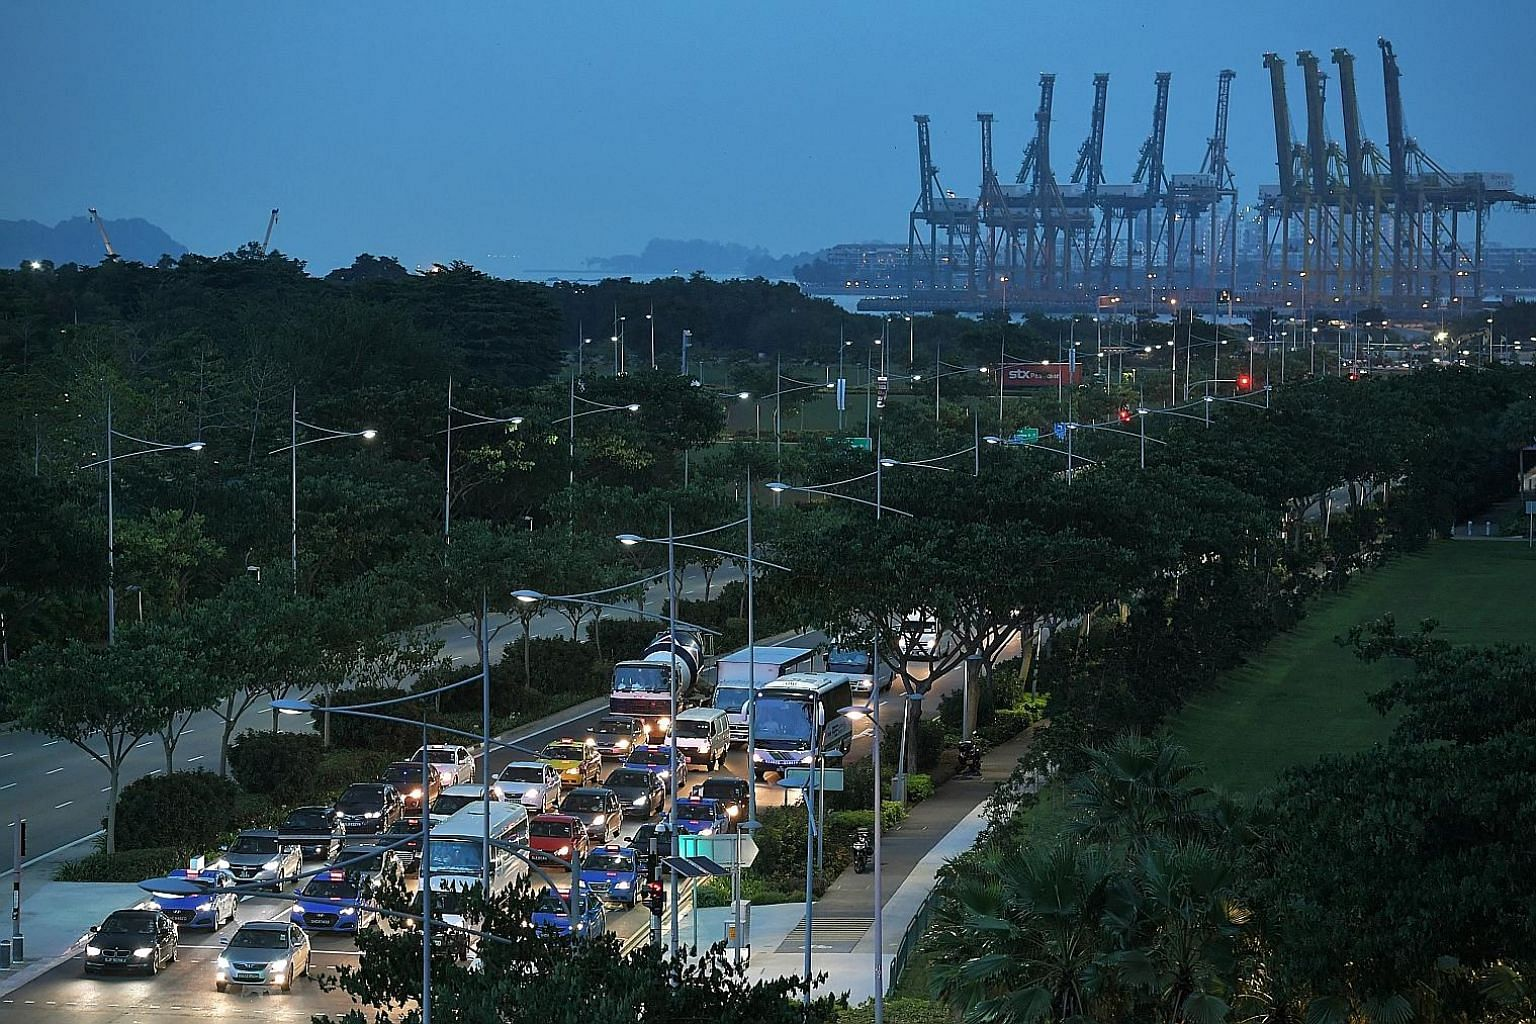 Singapore is one of the most expensive places in the world to buy a car. But surging car prices have the unintended consequence of stimulating driving among the people who bought the cars, according to a study. In other words, car buyers reason that